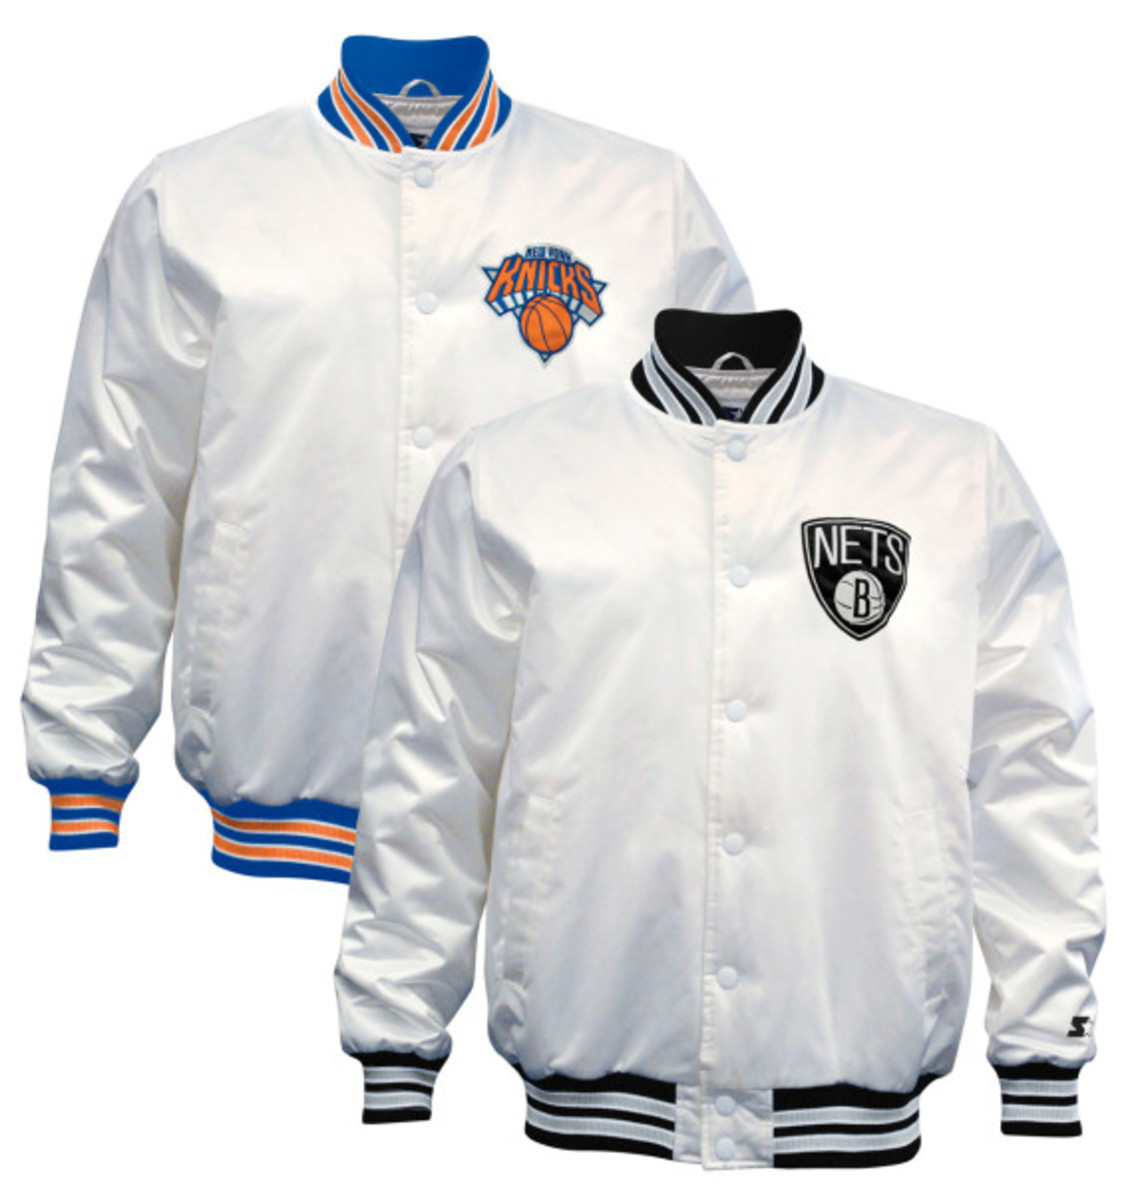 Starter – New York Knicks & Brooklyn Nets Limited Edition Satin Jacket in Christmas White - 0